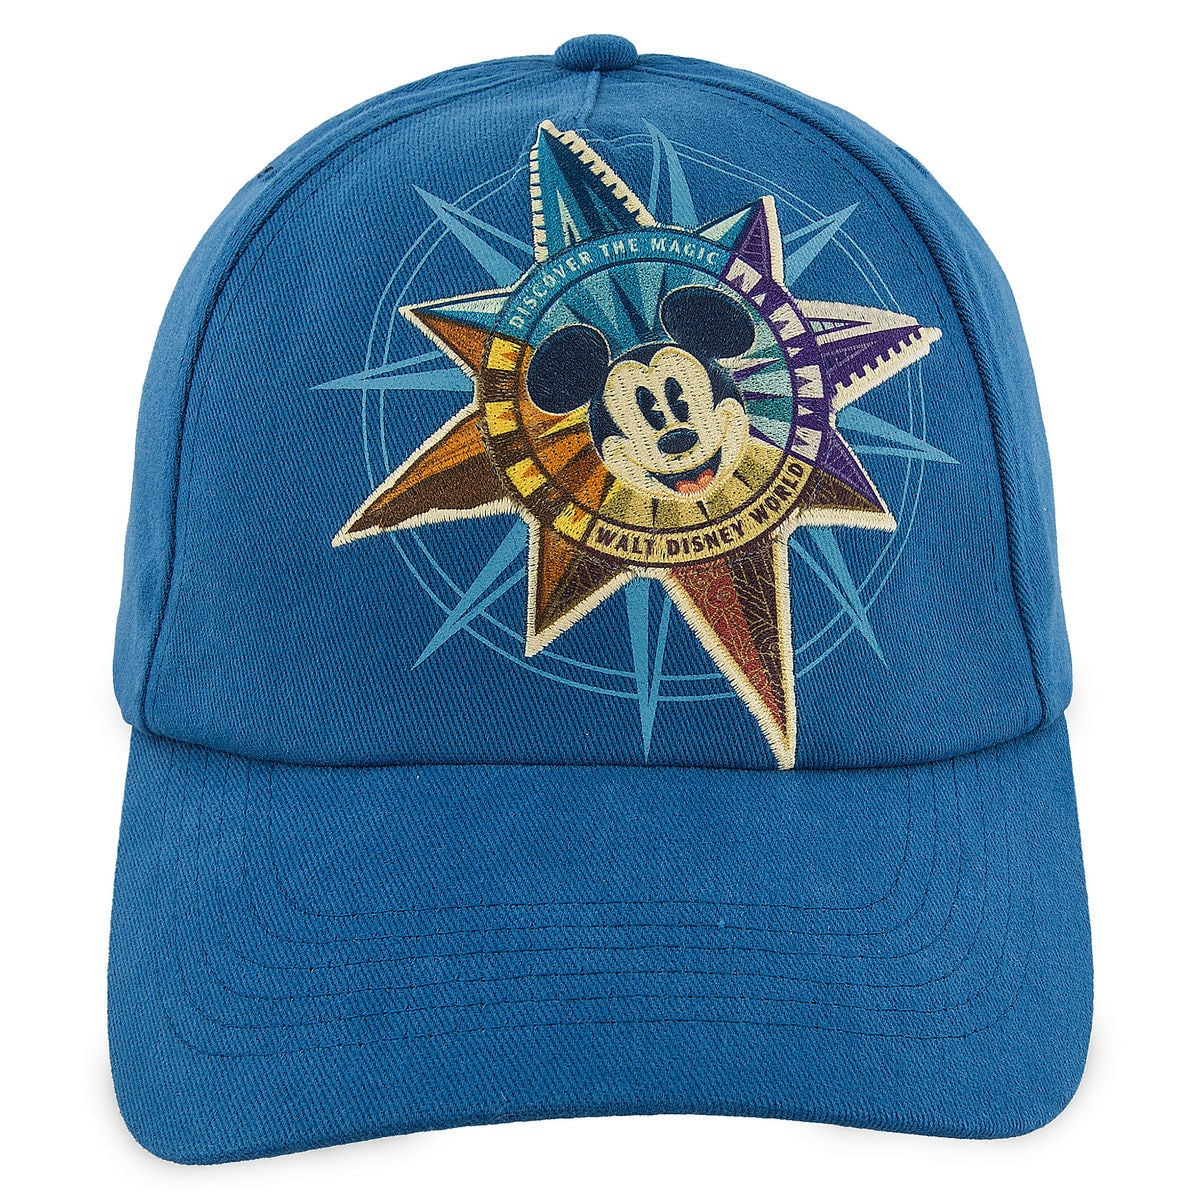 2c98cfc7c83 Product Image of Mickey Mouse Compass Baseball Cap for Adults - Walt Disney  World   1